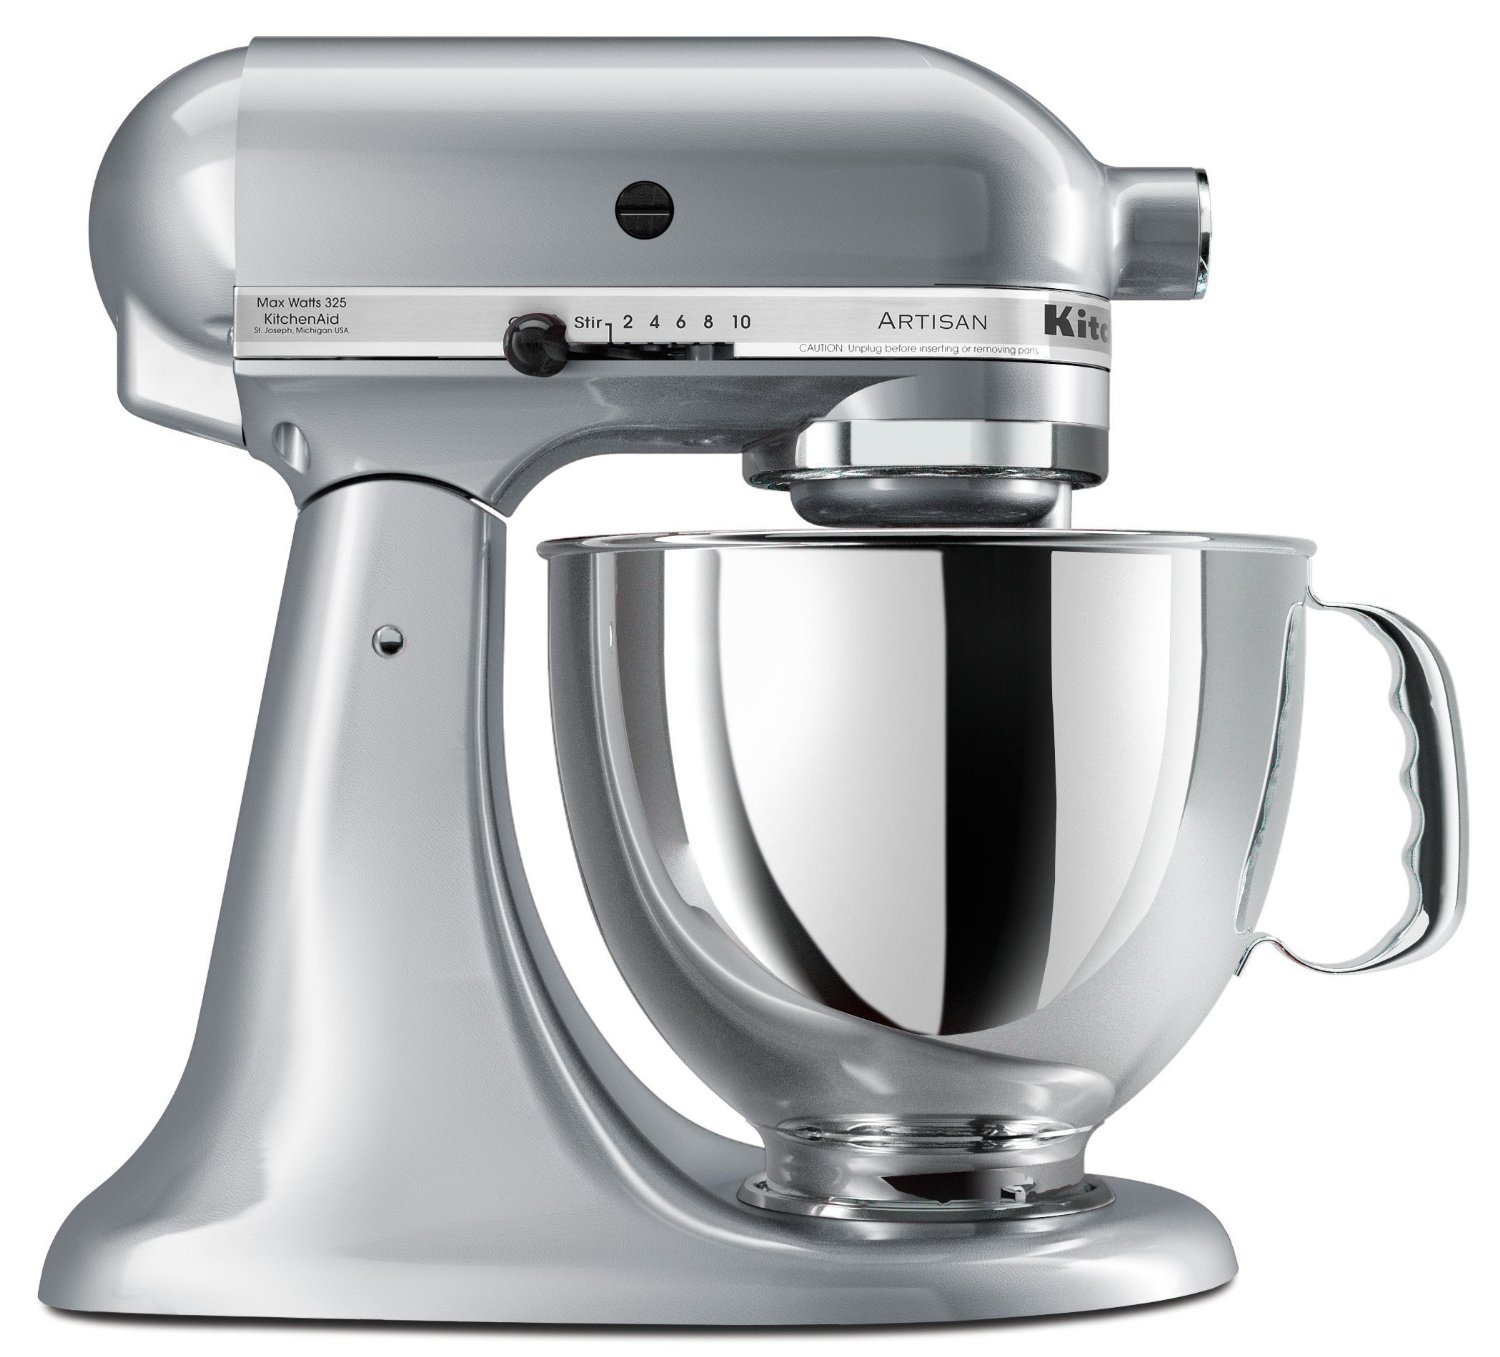 Black friday kitchen aid mixer Photo - 7